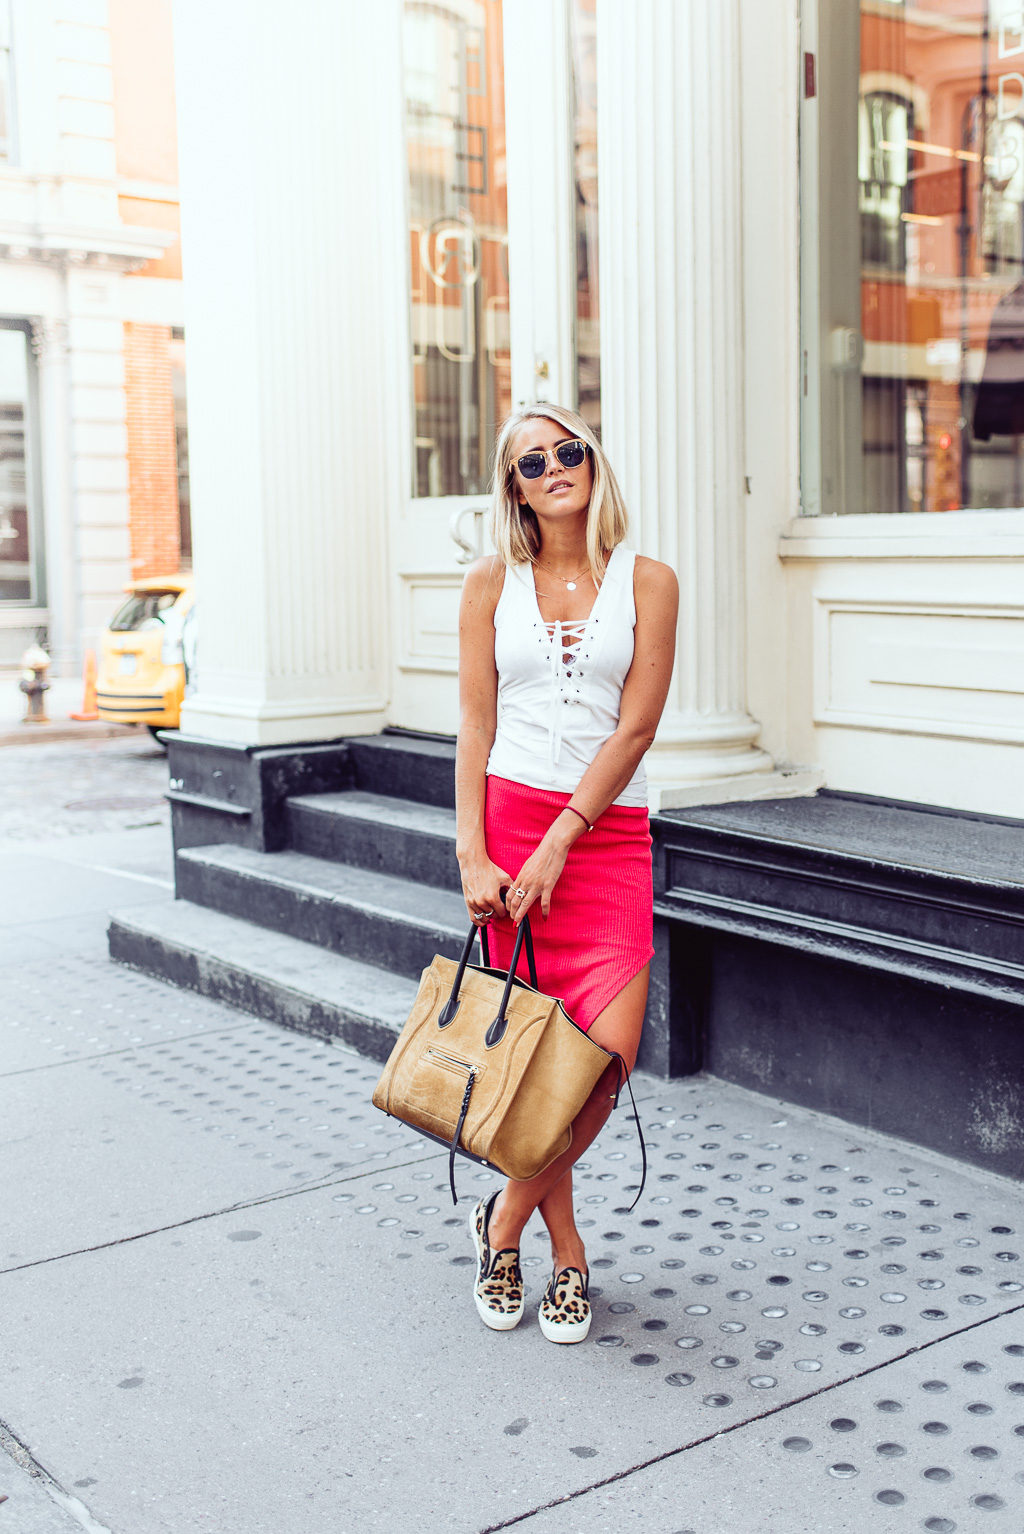 Janni Deler wears simple white lace up vest with a statement red skirt and cute cheetah canvas shoes. Top/Skirt: Gina Tricot, Shoes: Daniel.